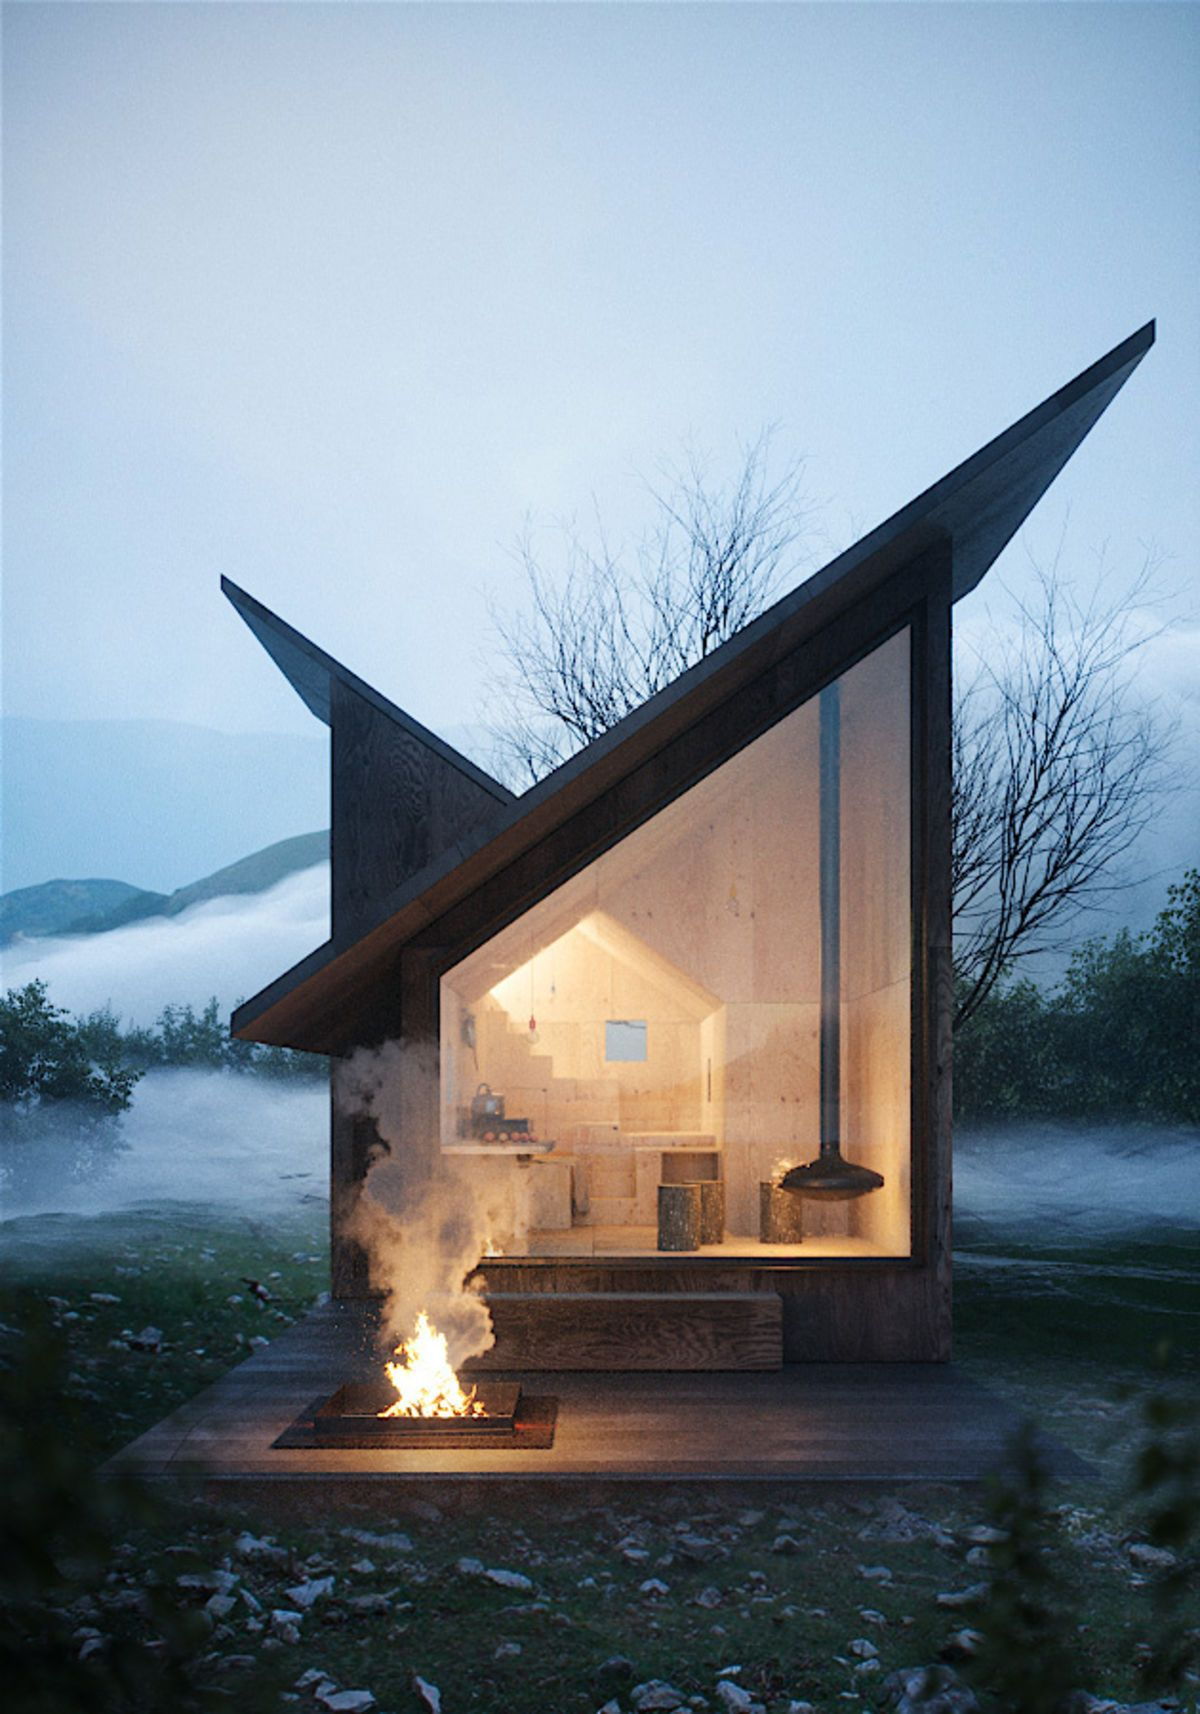 Mountain Architects Hendricks: The Evocation Of An Archetype Through A Contemporary